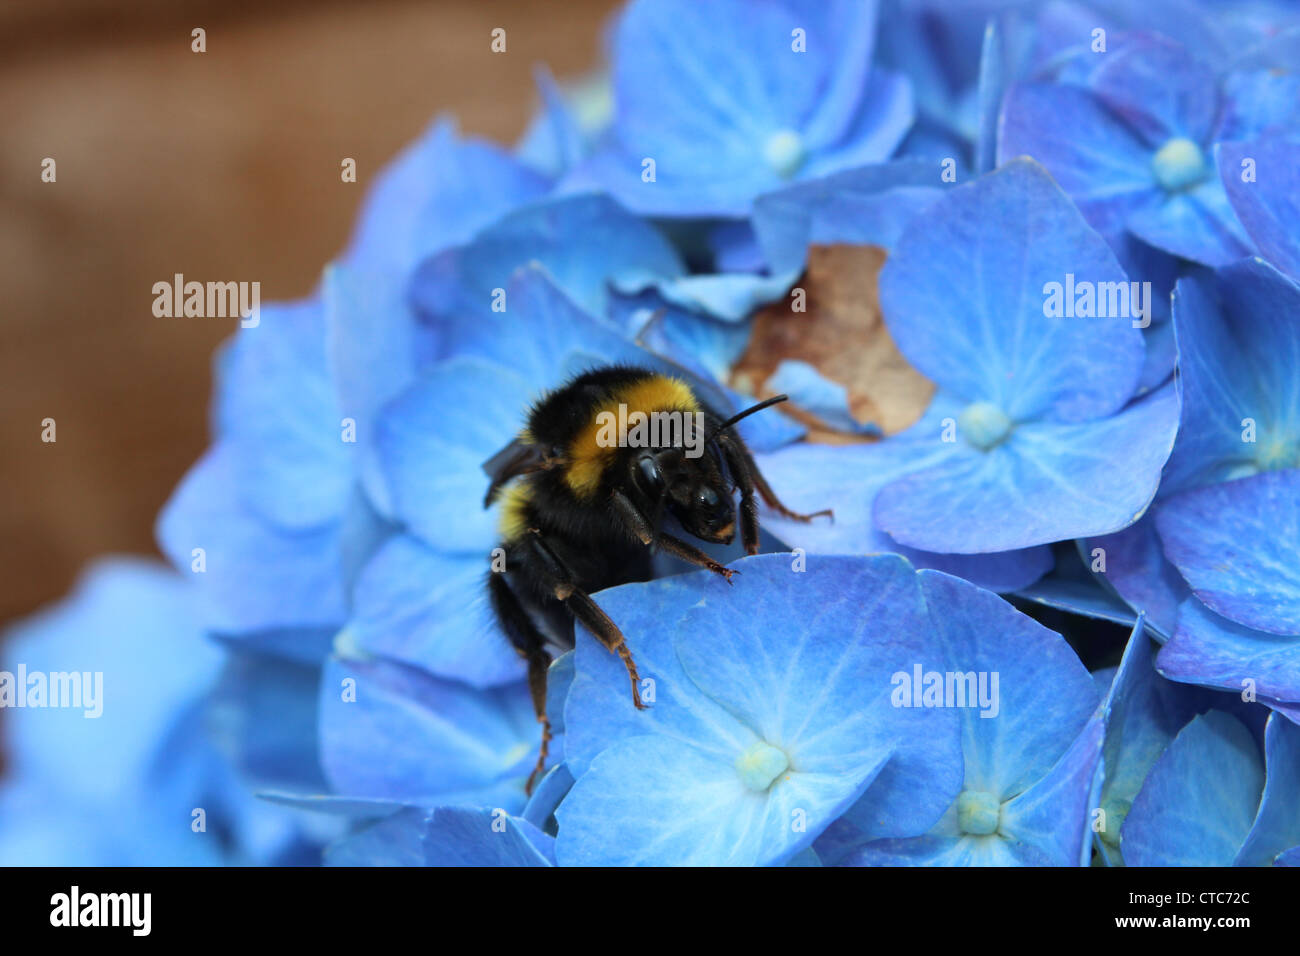 Bee happy. - Stock Image